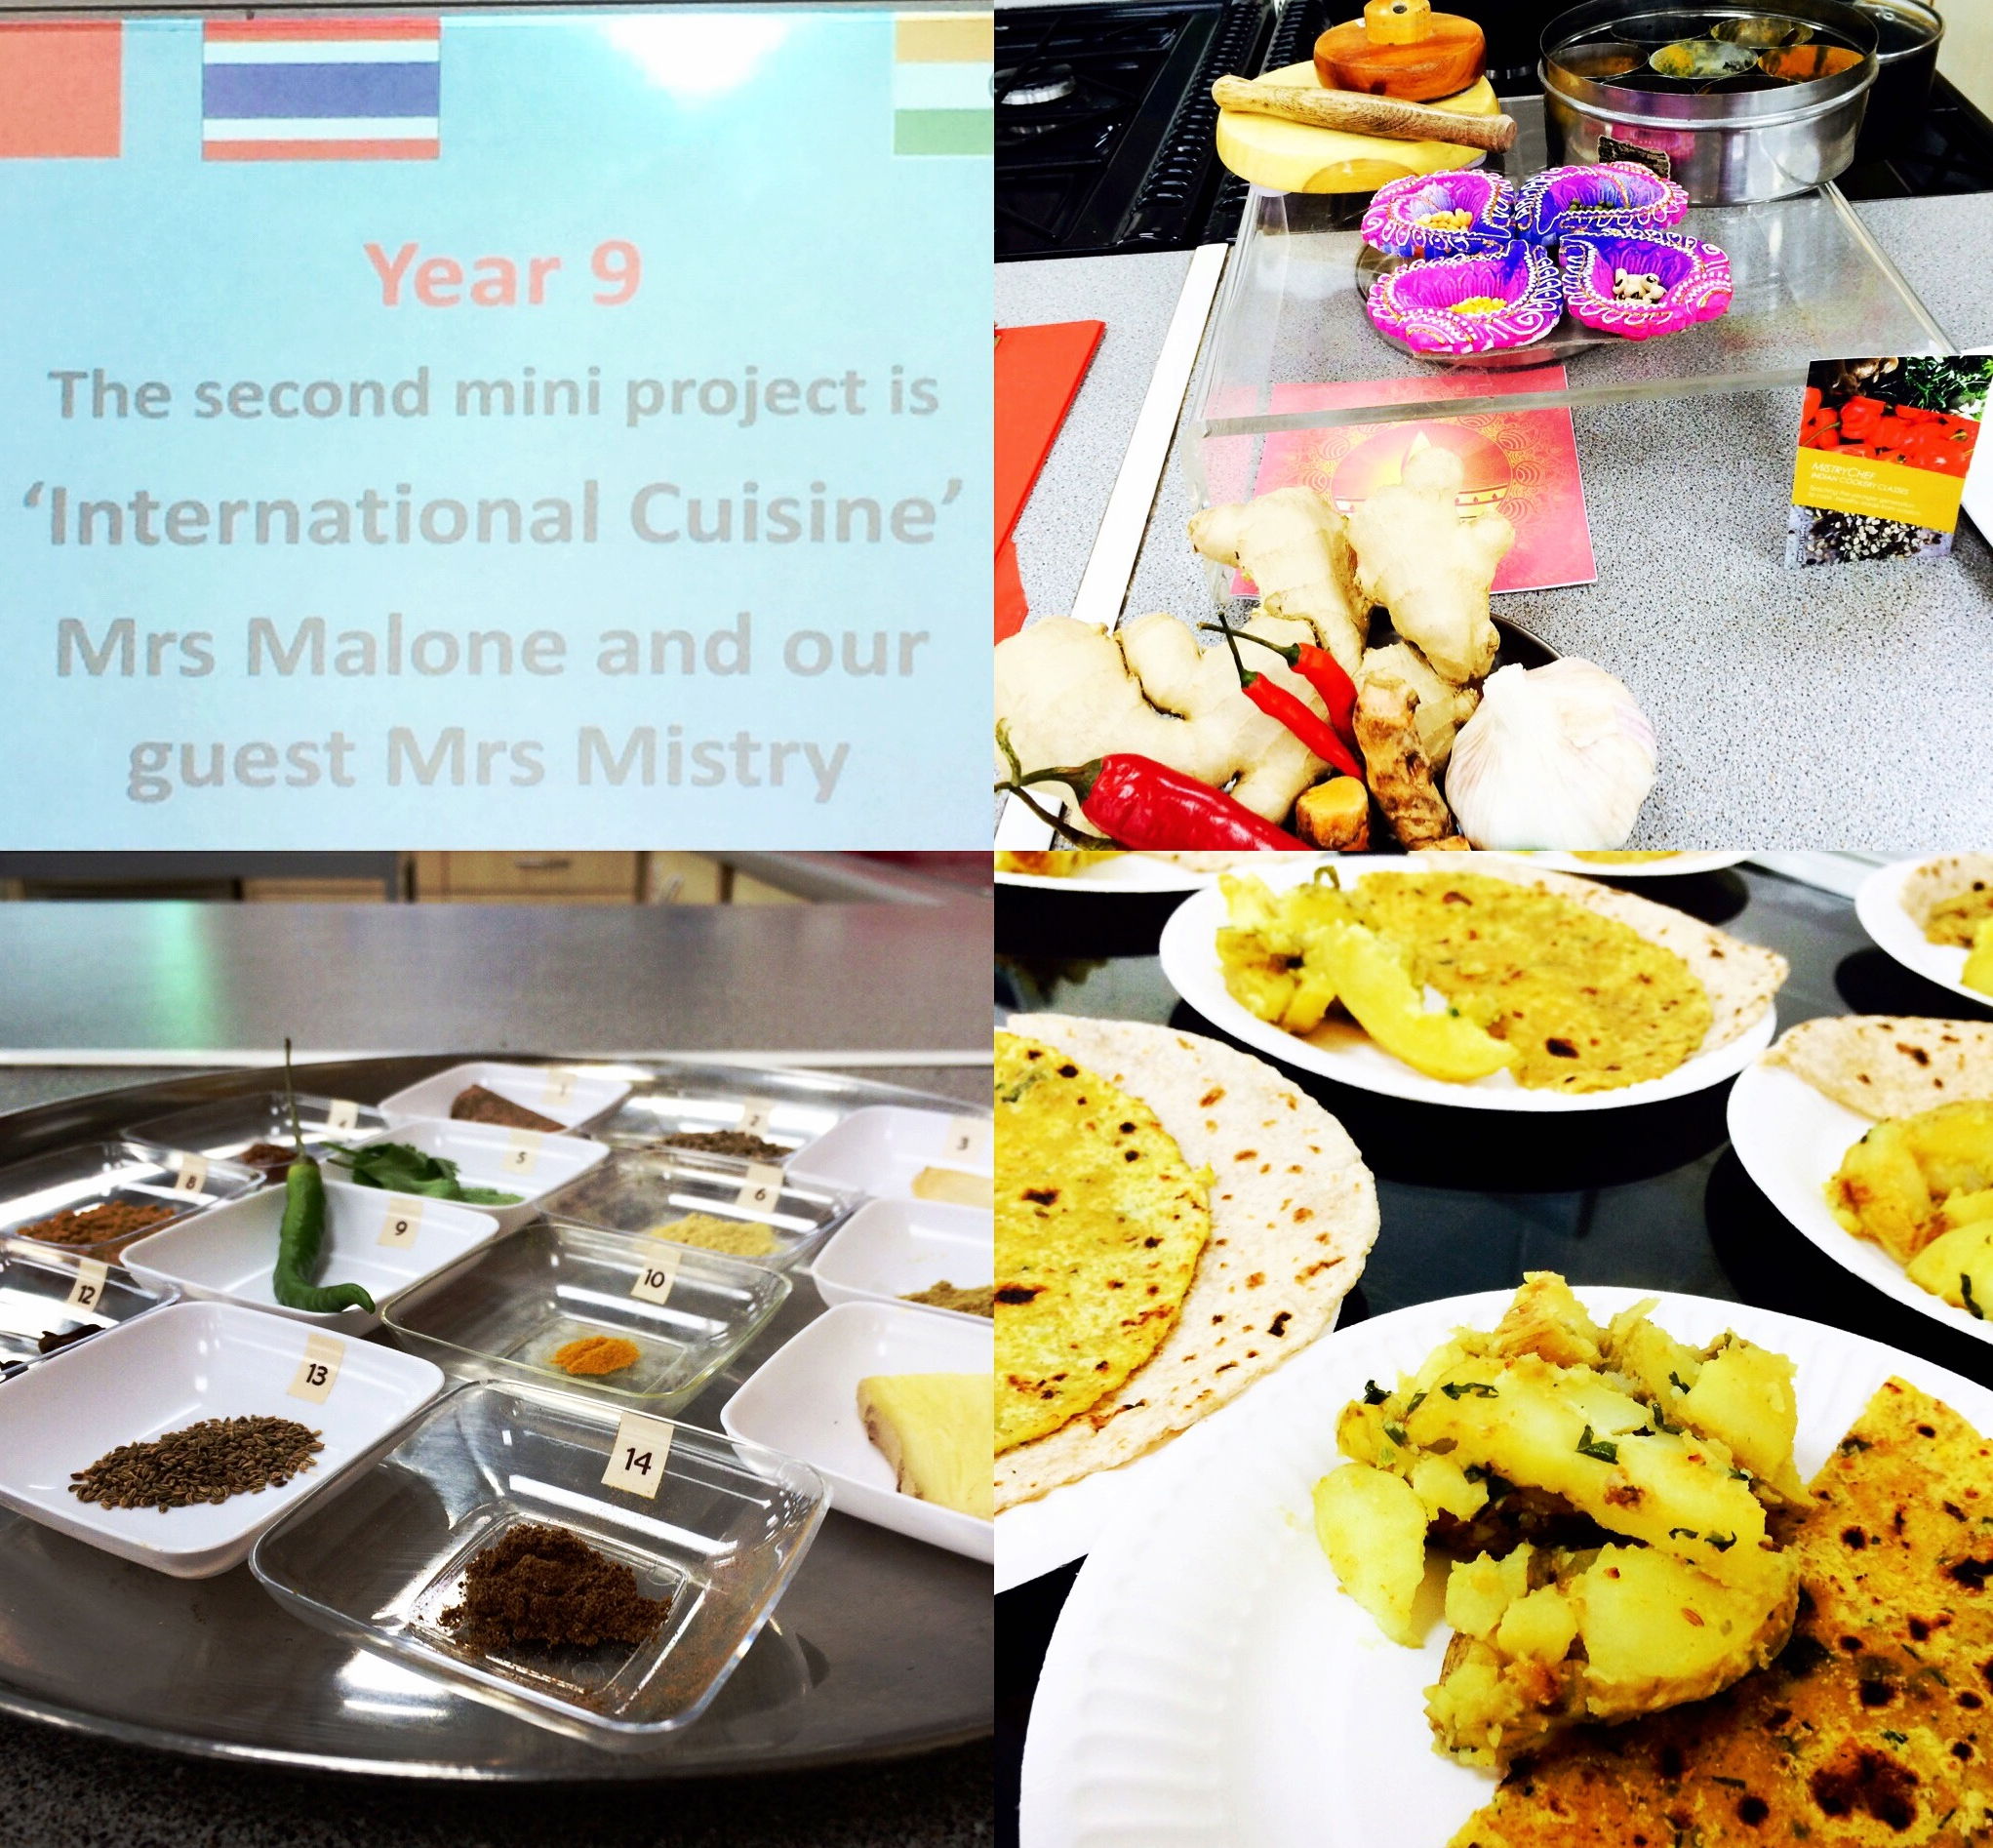 Sir Henry Floyd Grammar School - MistryChef has been visiting SHFGS for 3 years and assisting us with the delivery of our 'International Cuisine' project to over 450 students. She engages the students throughout the sessions. Using quizzes helps the students develop their knowledge on the benefits of using spices in foods and demonstrating the delicious potato curry & parathas for the students to taste. There are always a number of students who are apprehensive but once they have seen how straight forward the recipes are, they are hooked, and many have chosen to cook it in lessons. Her expertise in using traditional equipment is inspiring and I loved expanding my spice cupboard and utilising the wealth of knowledge she has shared on the health benefits of adding these colourful, aromatic ingredients.We are most grateful for her kind donations, particularly at the Christmas Fayre where her food warms us on the coldest of days.Mrs A MaloneFood & Nutrition, Sir Henry Floyd Grammar School